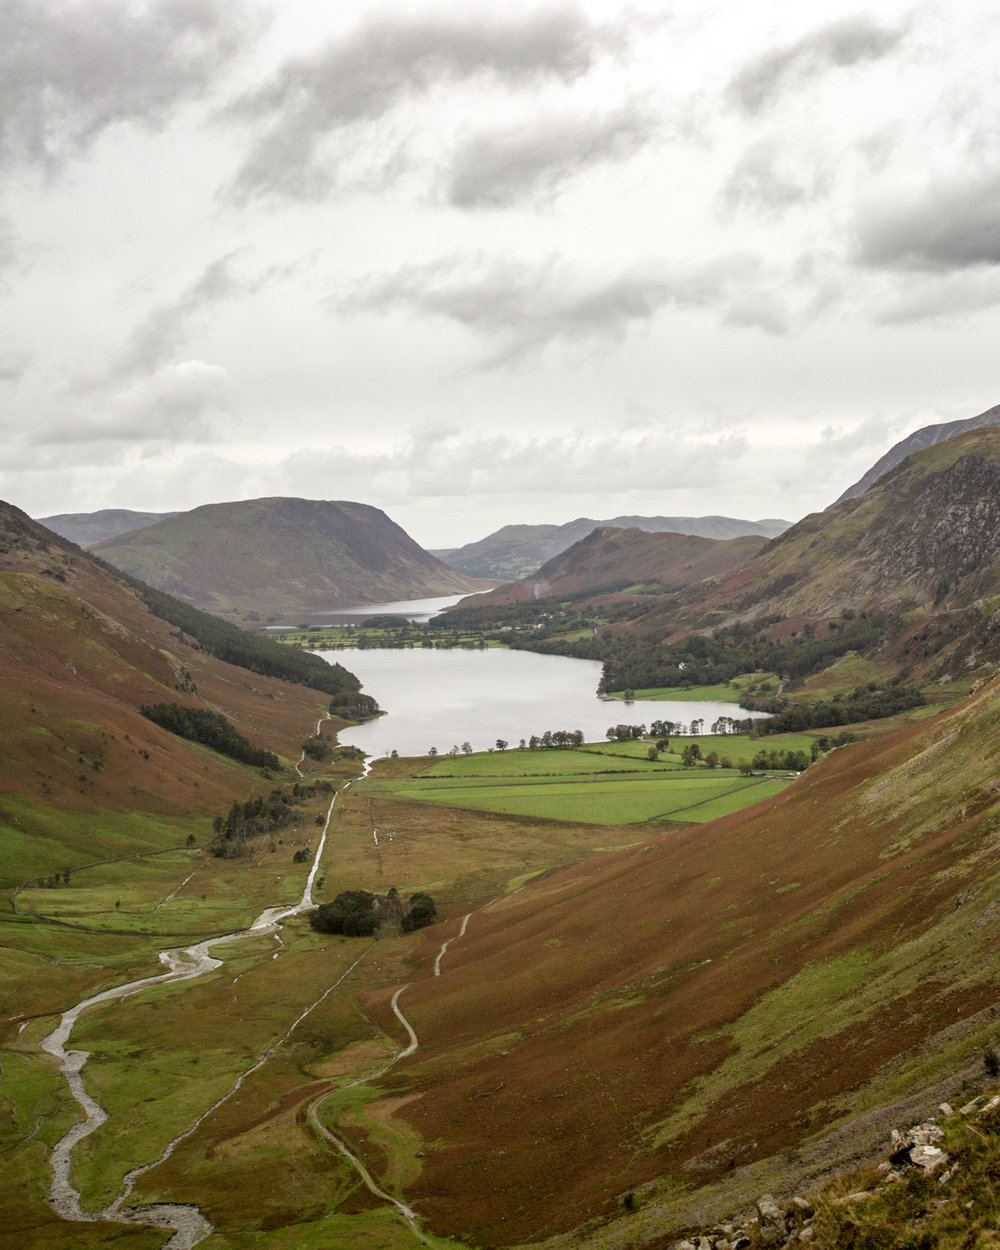 The view of Buttermere from Haystacks